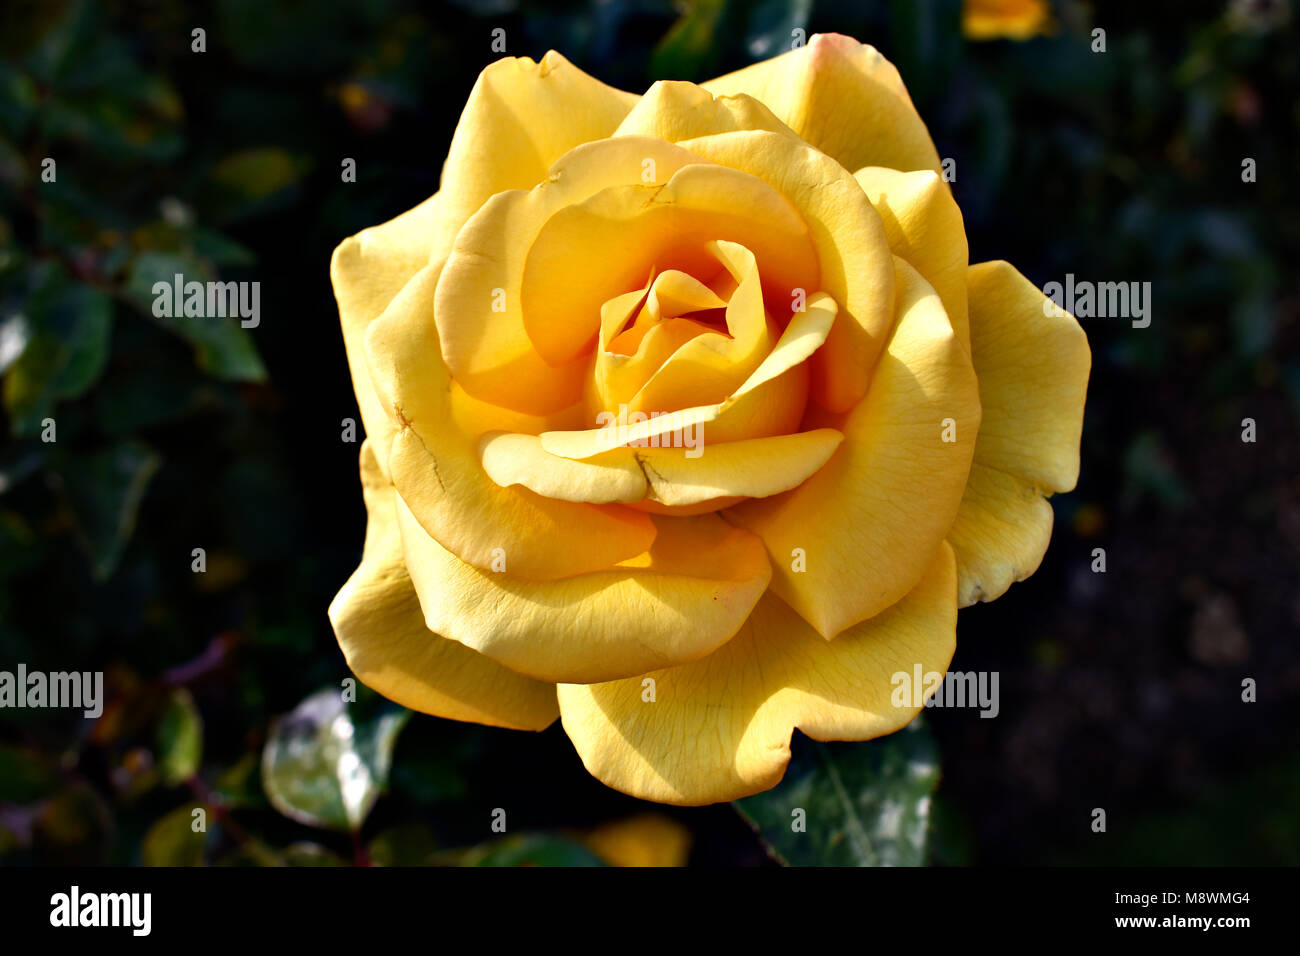 Background leaves meaning bloom flower stock photos background yellow roses meaning bright cheerful and joyful create warm feelings and provide happiness they mightylinksfo